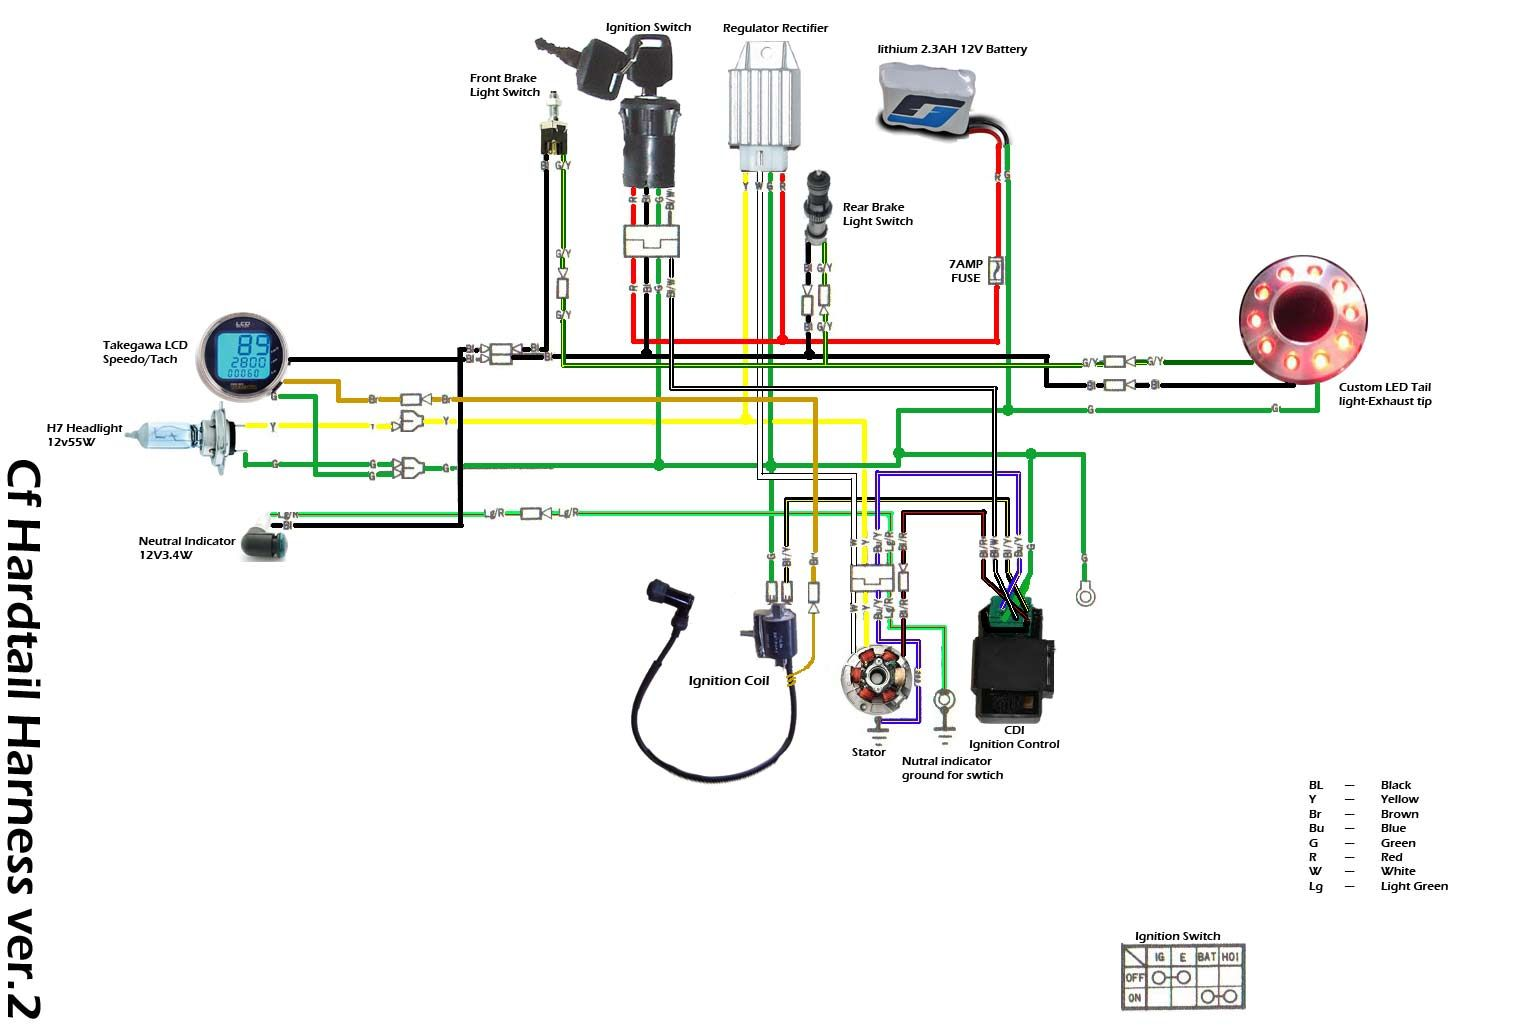 110cc wiring diagram wiring diagram schematics tao tao 110 wiring diagram chinese 110cc atv wiring diagram [ 1516 x 1025 Pixel ]